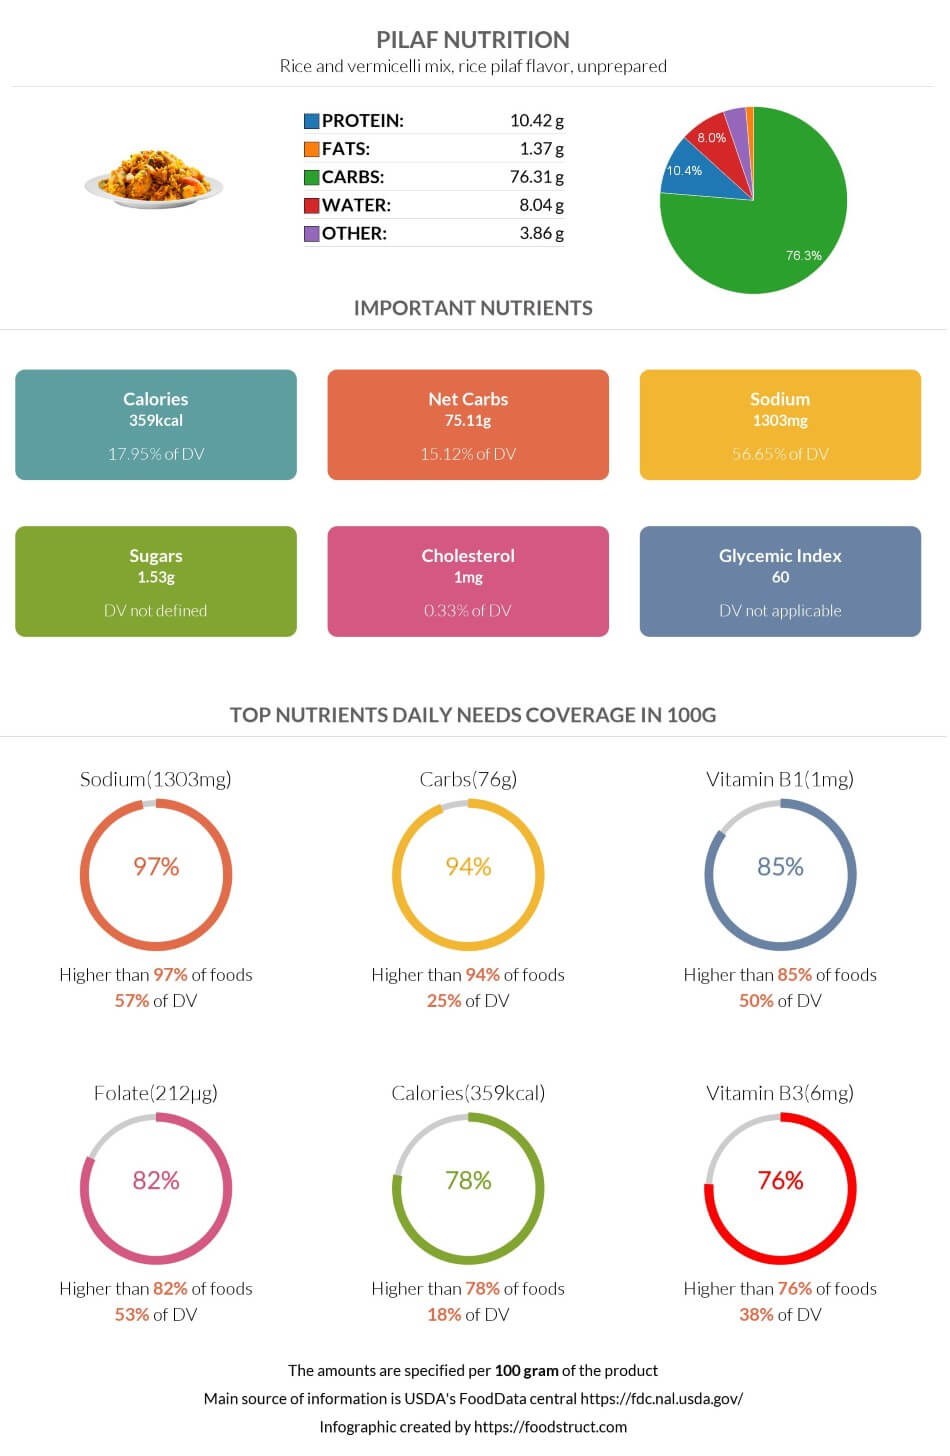 Pilaf nutrition infographic